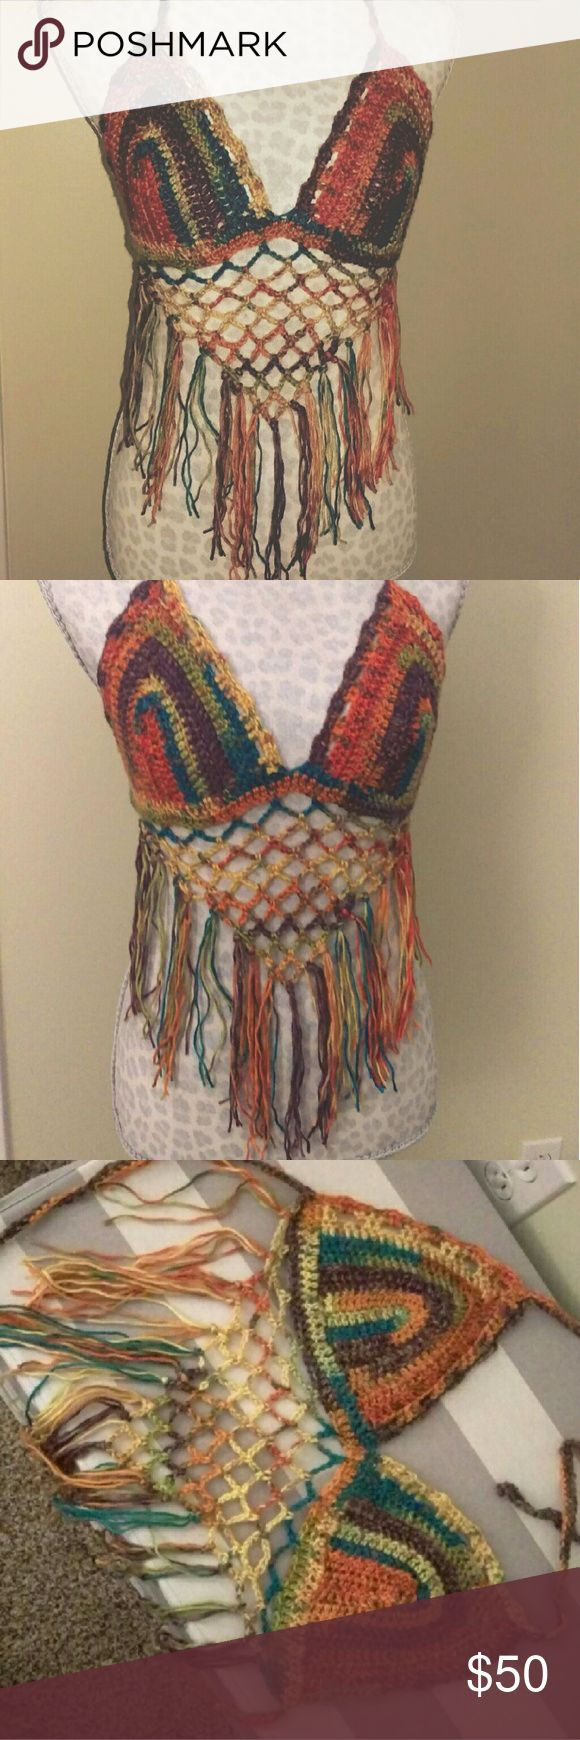 Crochet festival bikini top Handmade crochet bikini top, perfect for this summer's music festivals! To make this, I used a bikini top in a size medium as a reference for the cups. The top and sides tie and the cups stretch as well, so I believe this will fit a range of sizes. Any questions, just ask! Tops